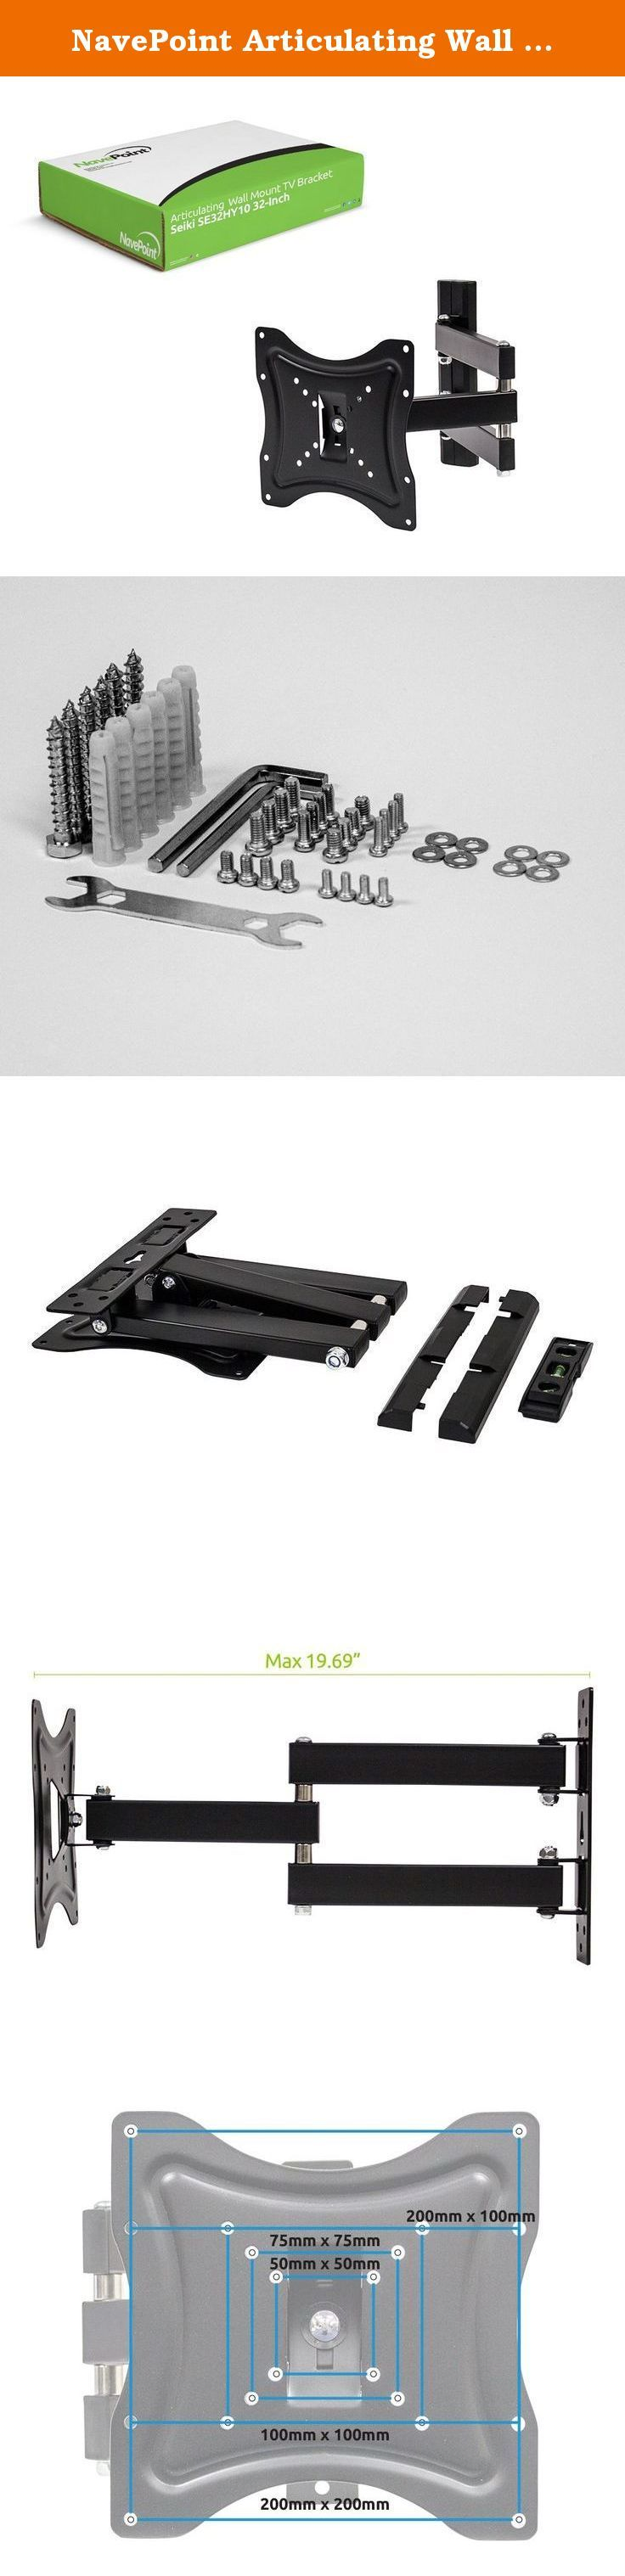 NavePoint Articulating Wall Mount TV Bracket for Seiki SE32HY10 32-Inch Flat Screen TV. This full motion articulating wall mount is perfect for mounting your Seiki SE32HY10 32-Inch to the wall. It has up to a 15 degree up and down tilt and 4 degree rotation allowing you to position the screen perfectly for your application. It is easy to install and comes with all of the necessary hardware.